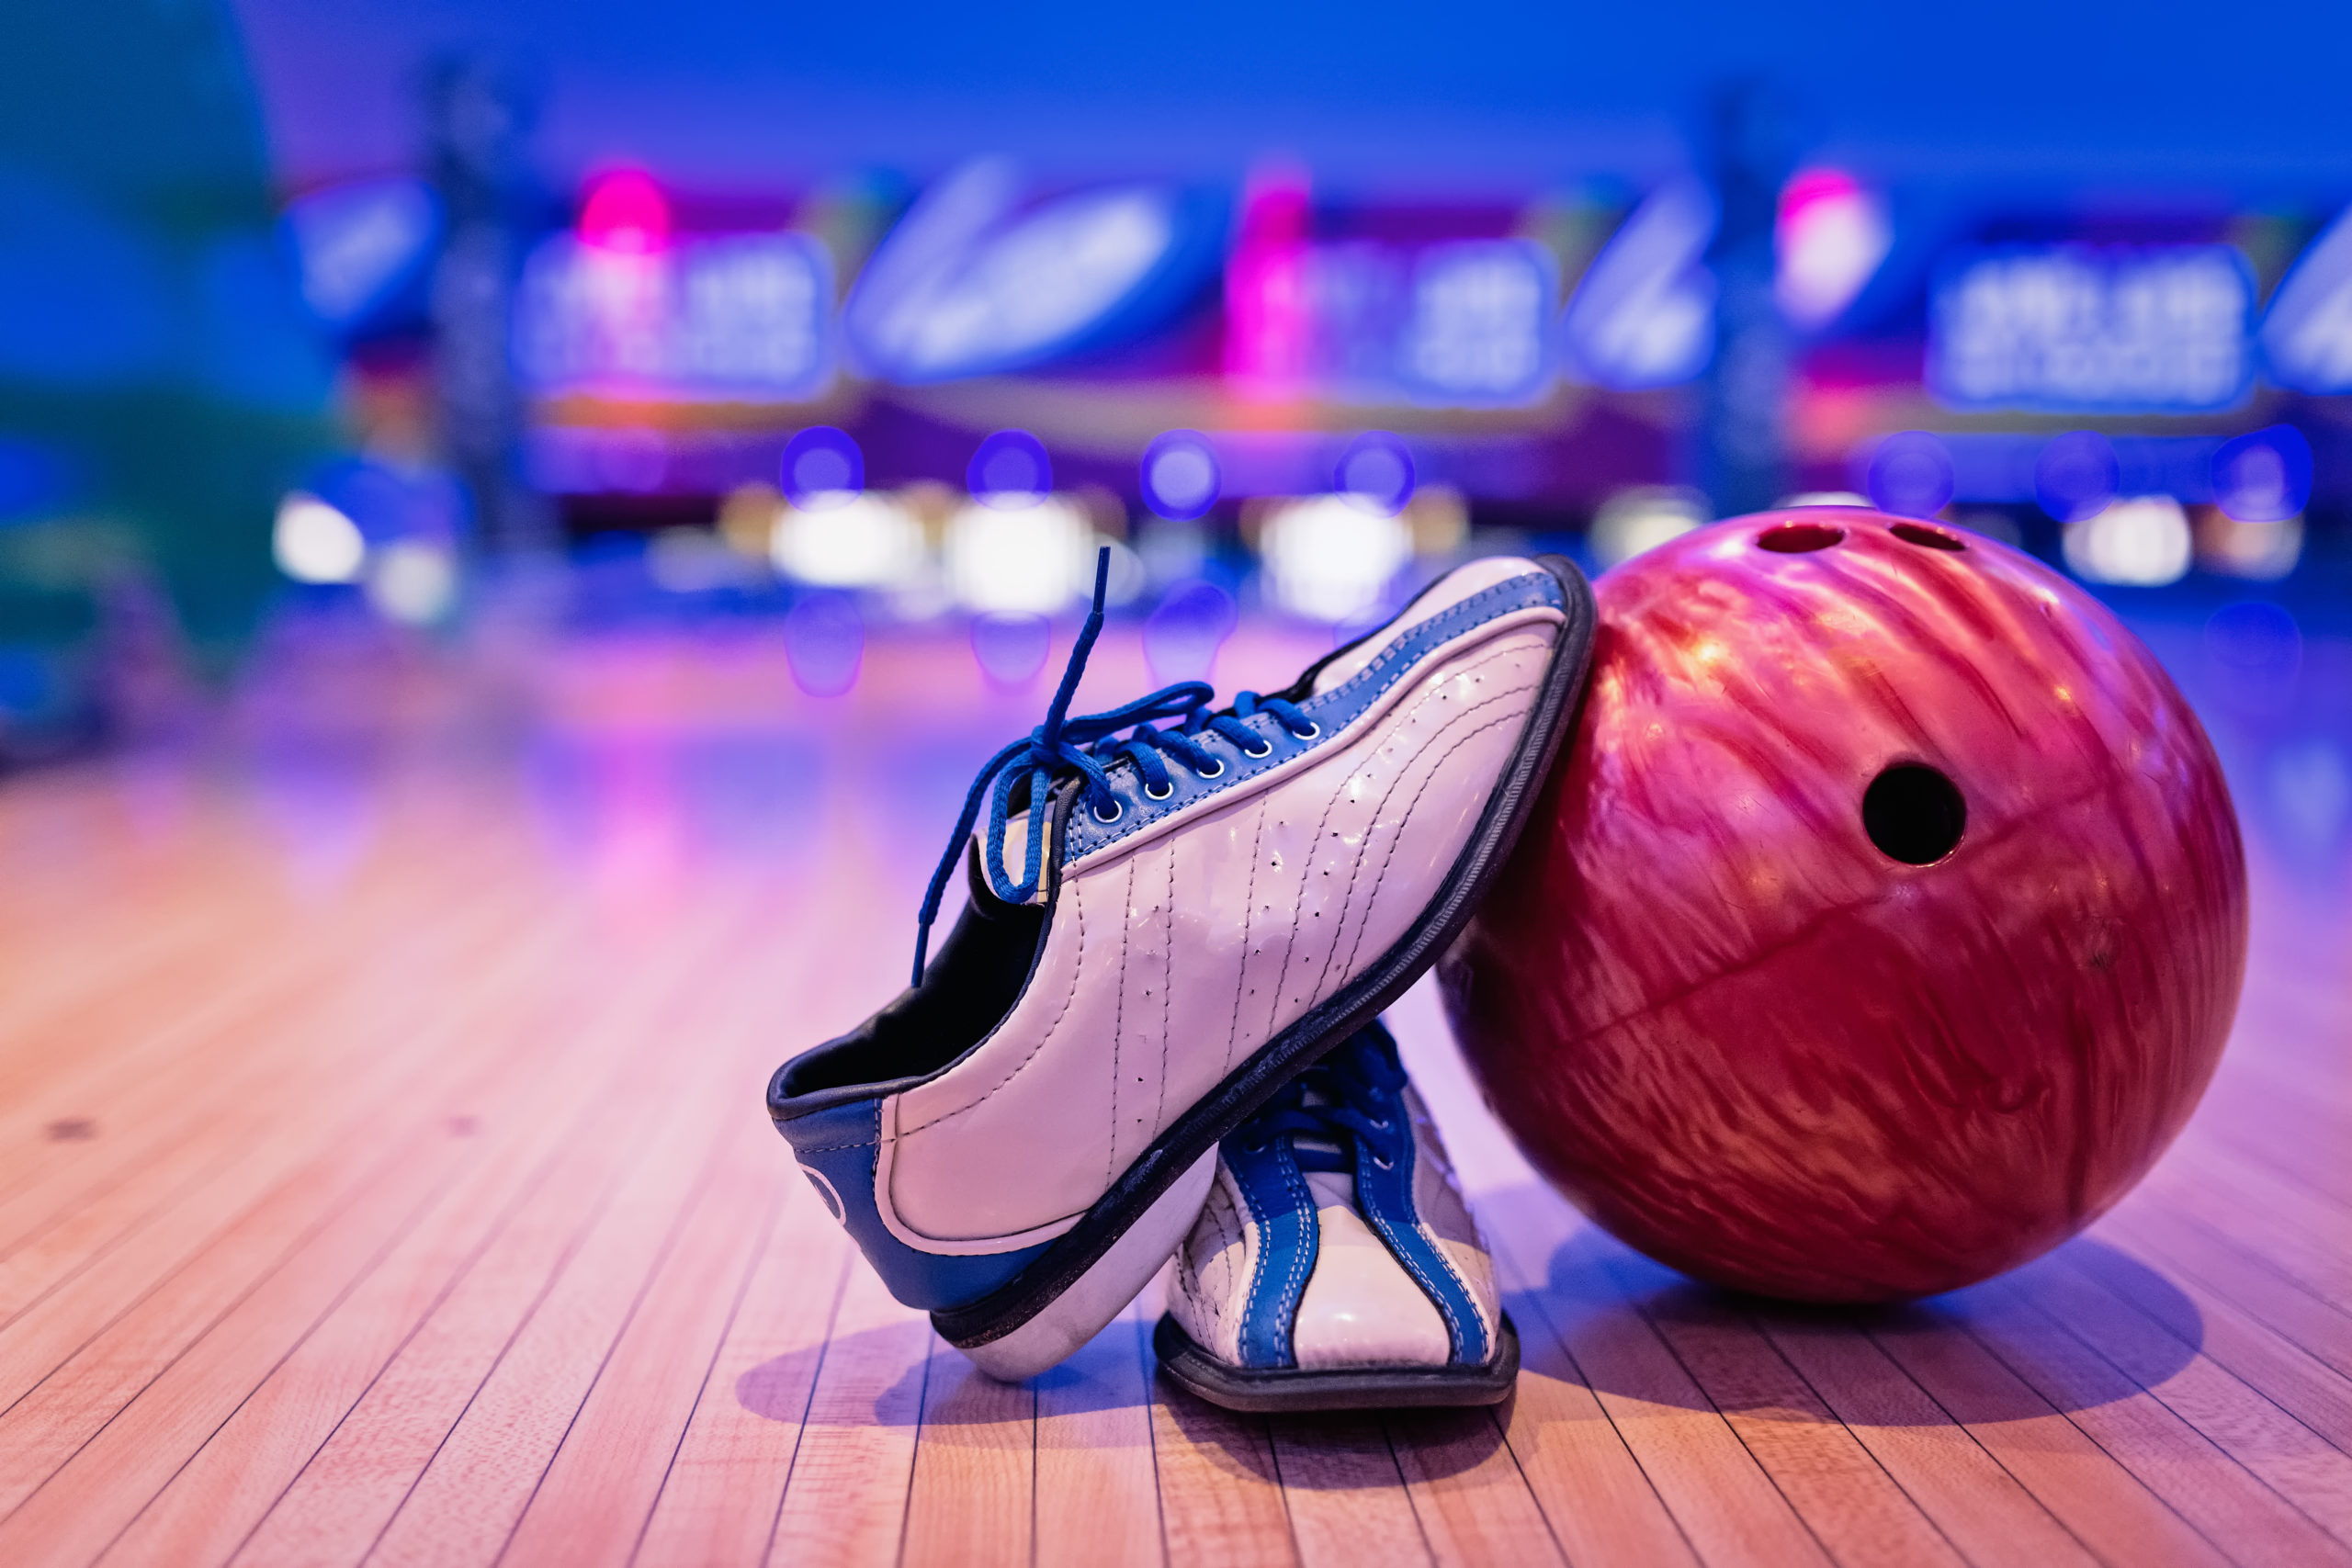 Bowling shoes and ball in front of a bowling lane | bowling alleys in Hanover, MD